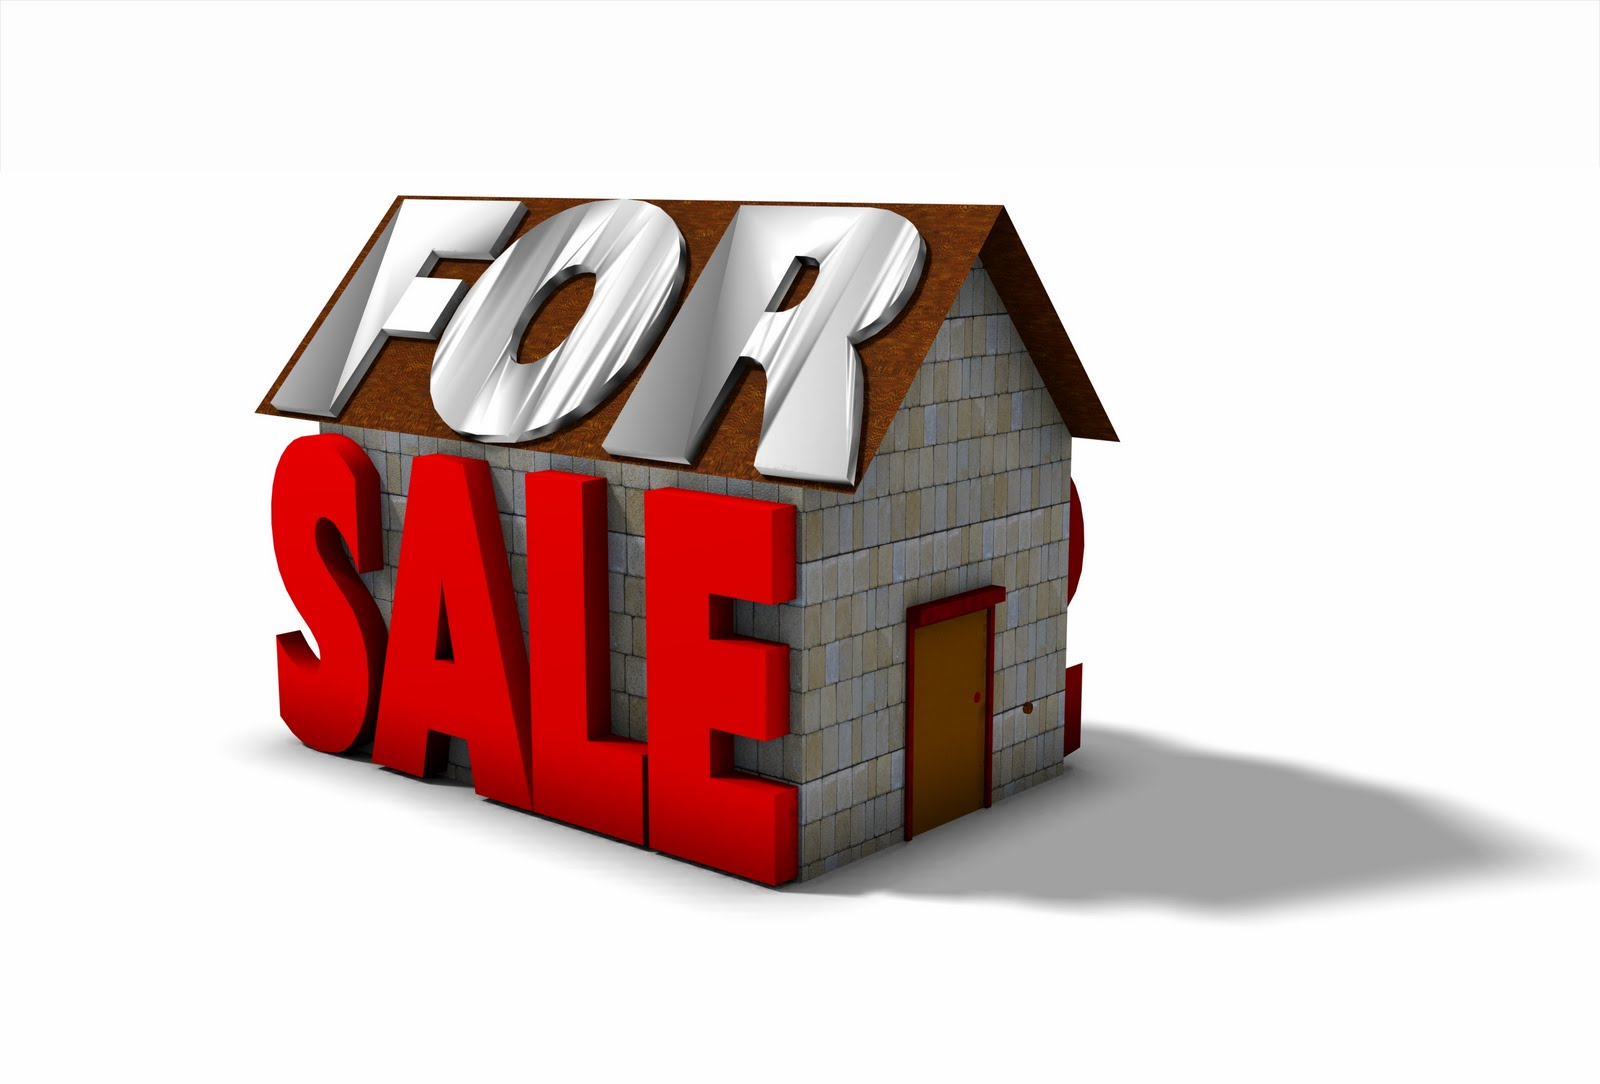 Property for sale - Find flats and houses for sale in the UK